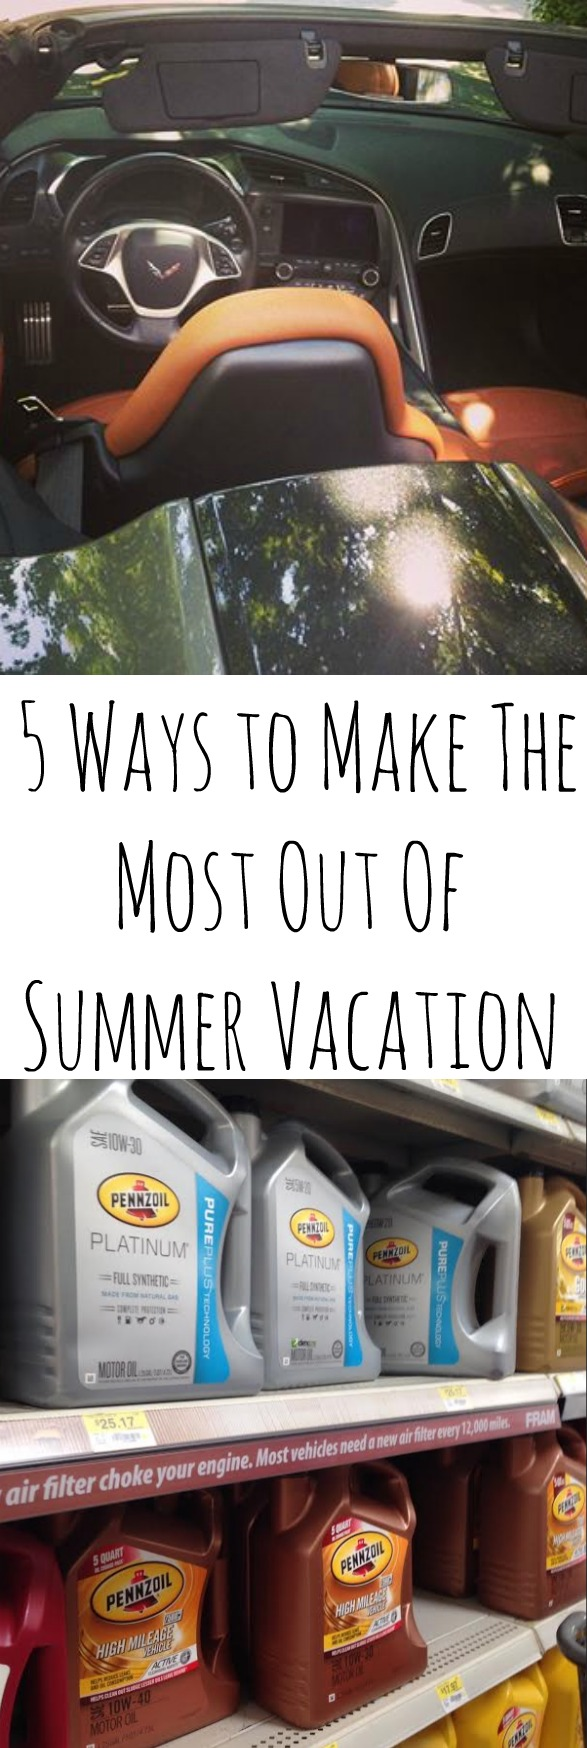 5 Ways to Make The Most Out Of Summer Vacation